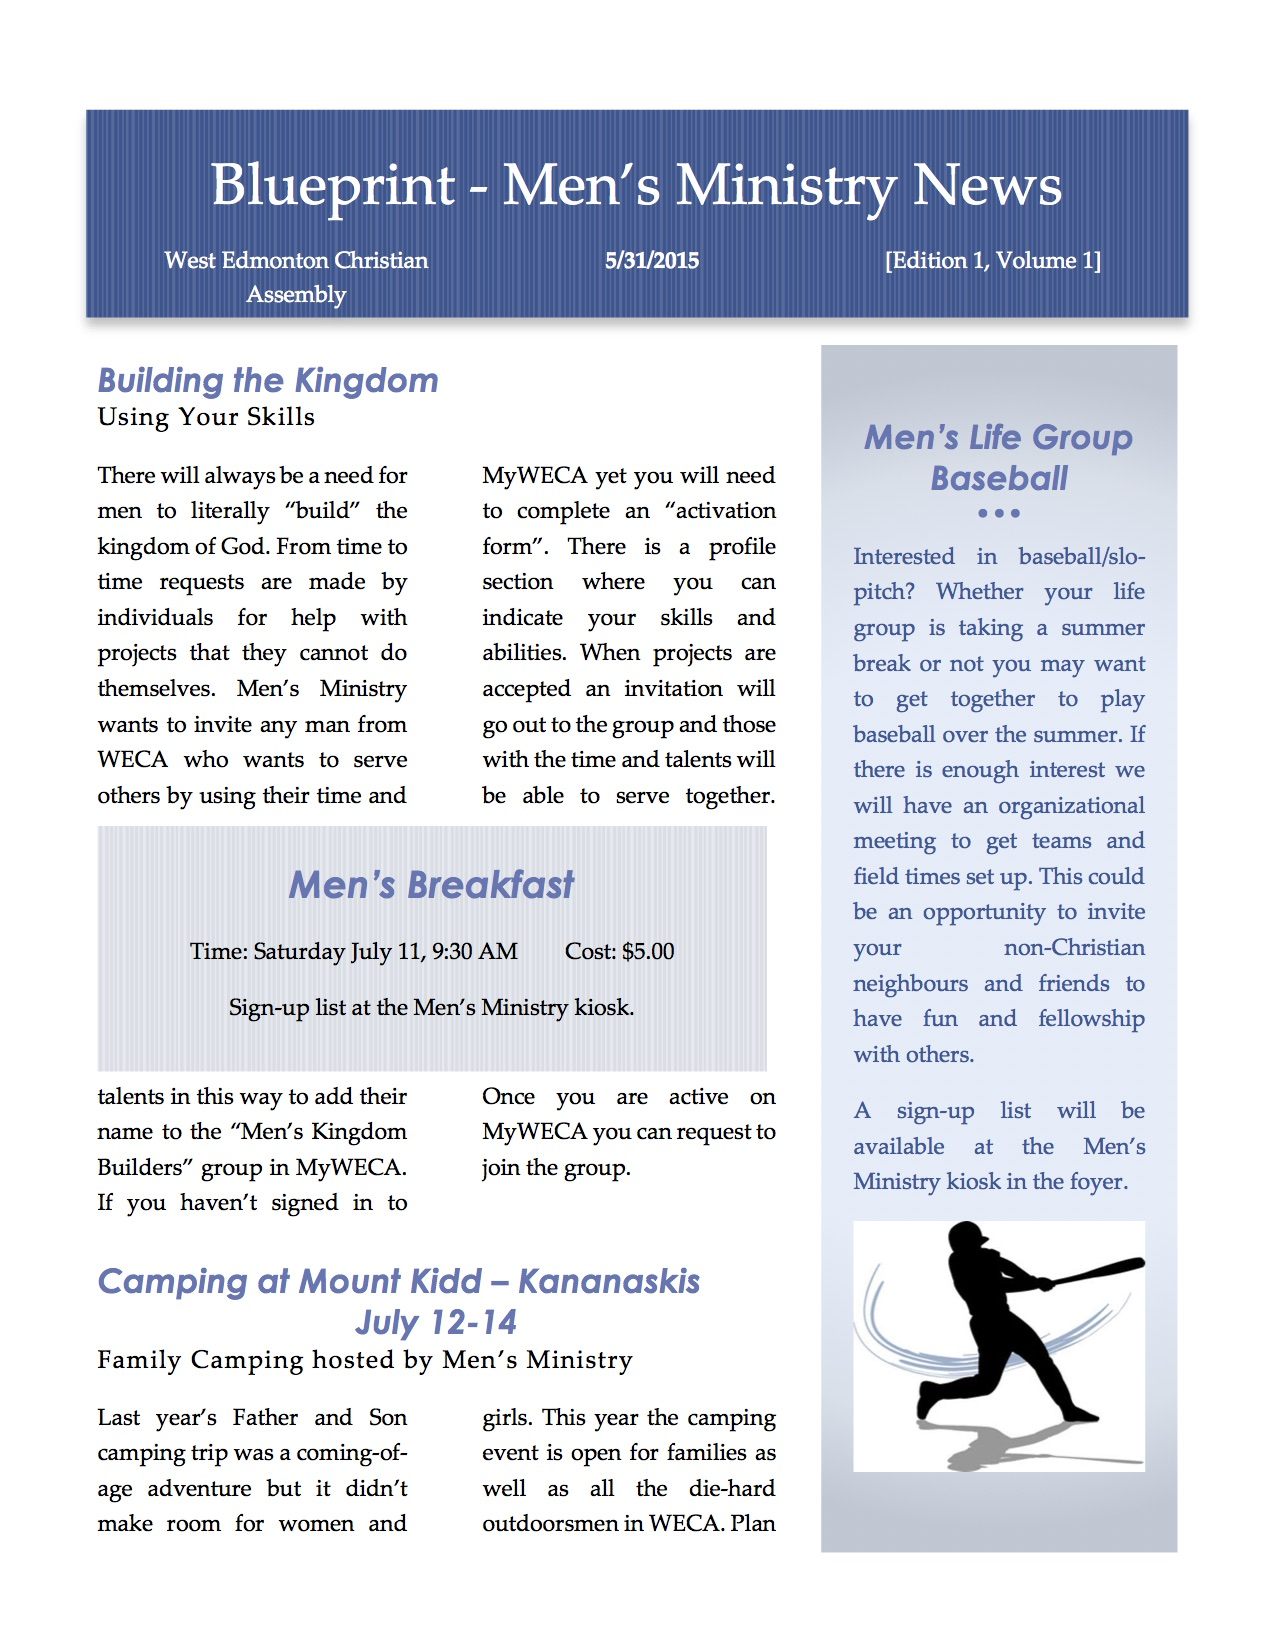 Mens events west edmonton christian assembly blueprint newsletter blueprint newsletter2 malvernweather Gallery